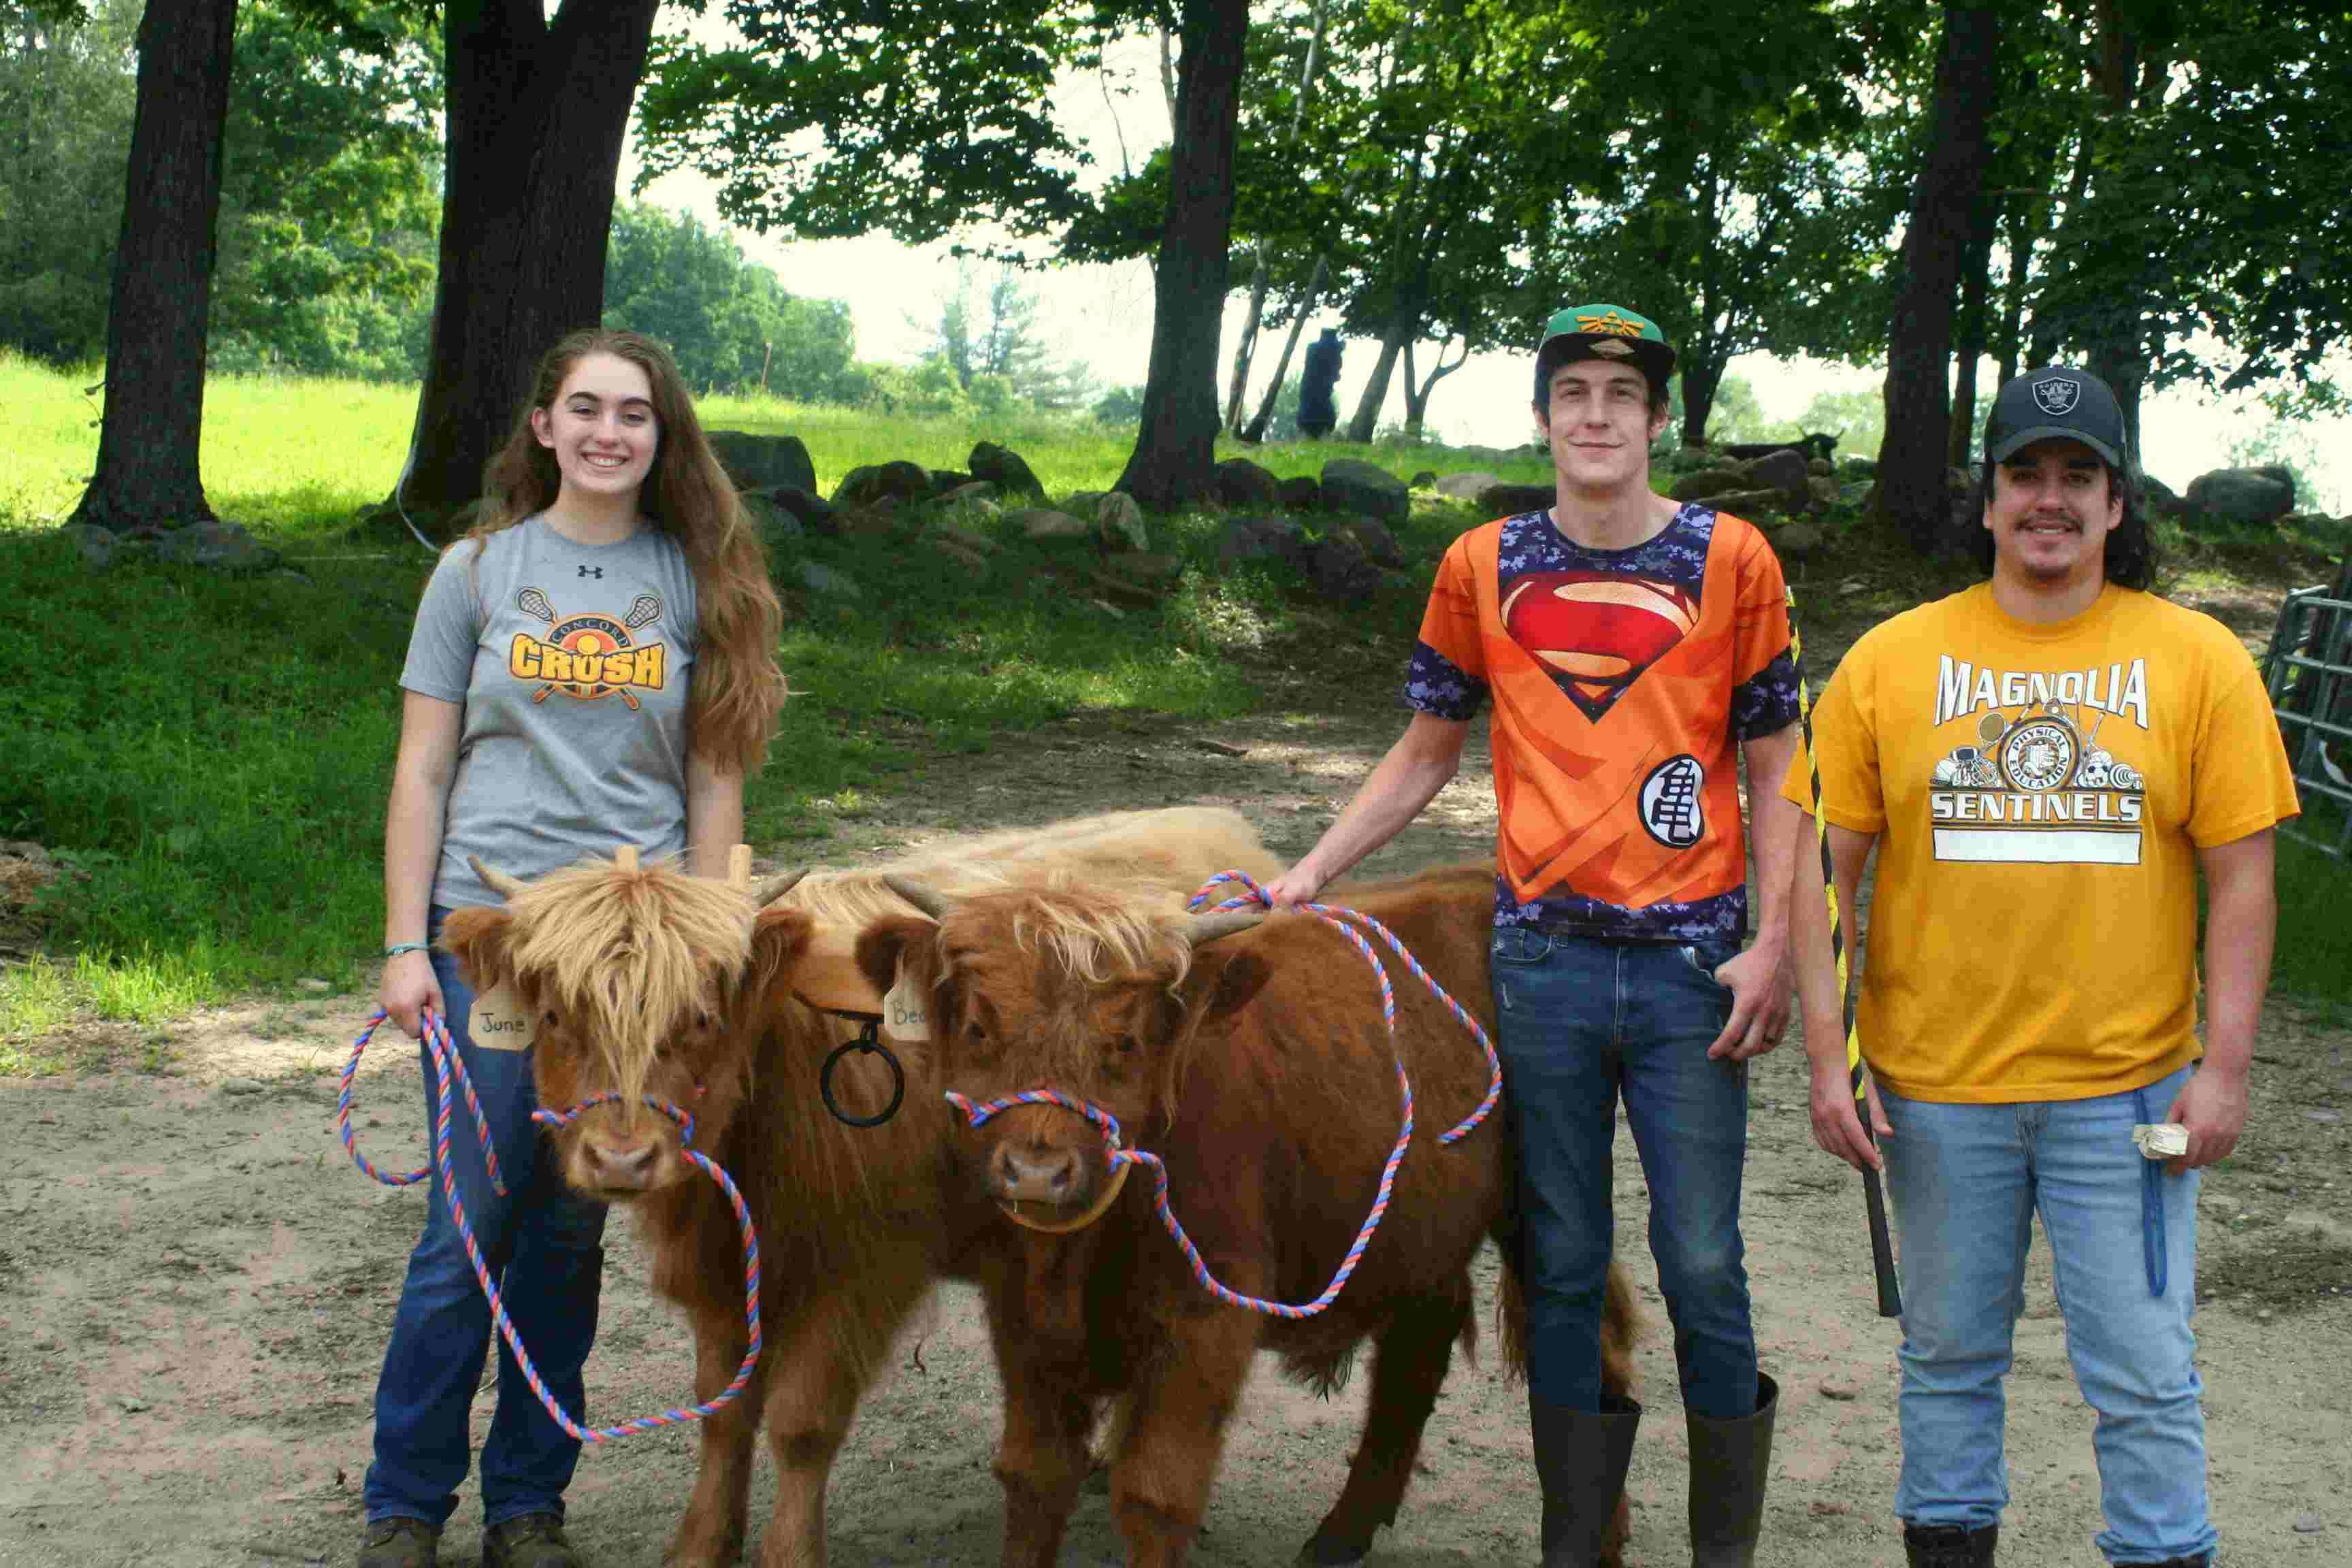 Working with the steers